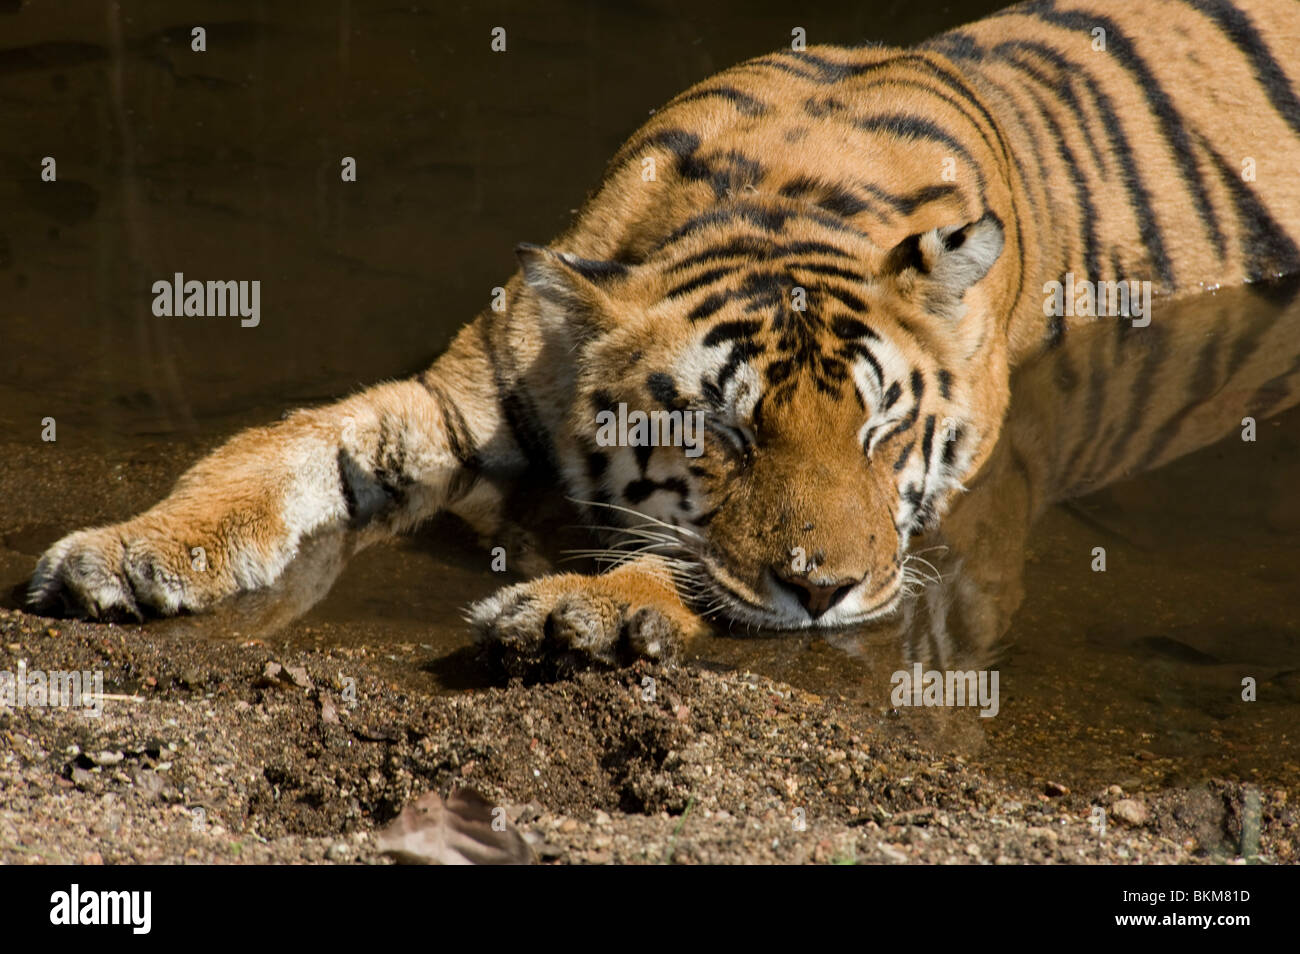 Bengal tiger relaxing and snoozing by cooling off in water Kanha NP, India - Stock Image